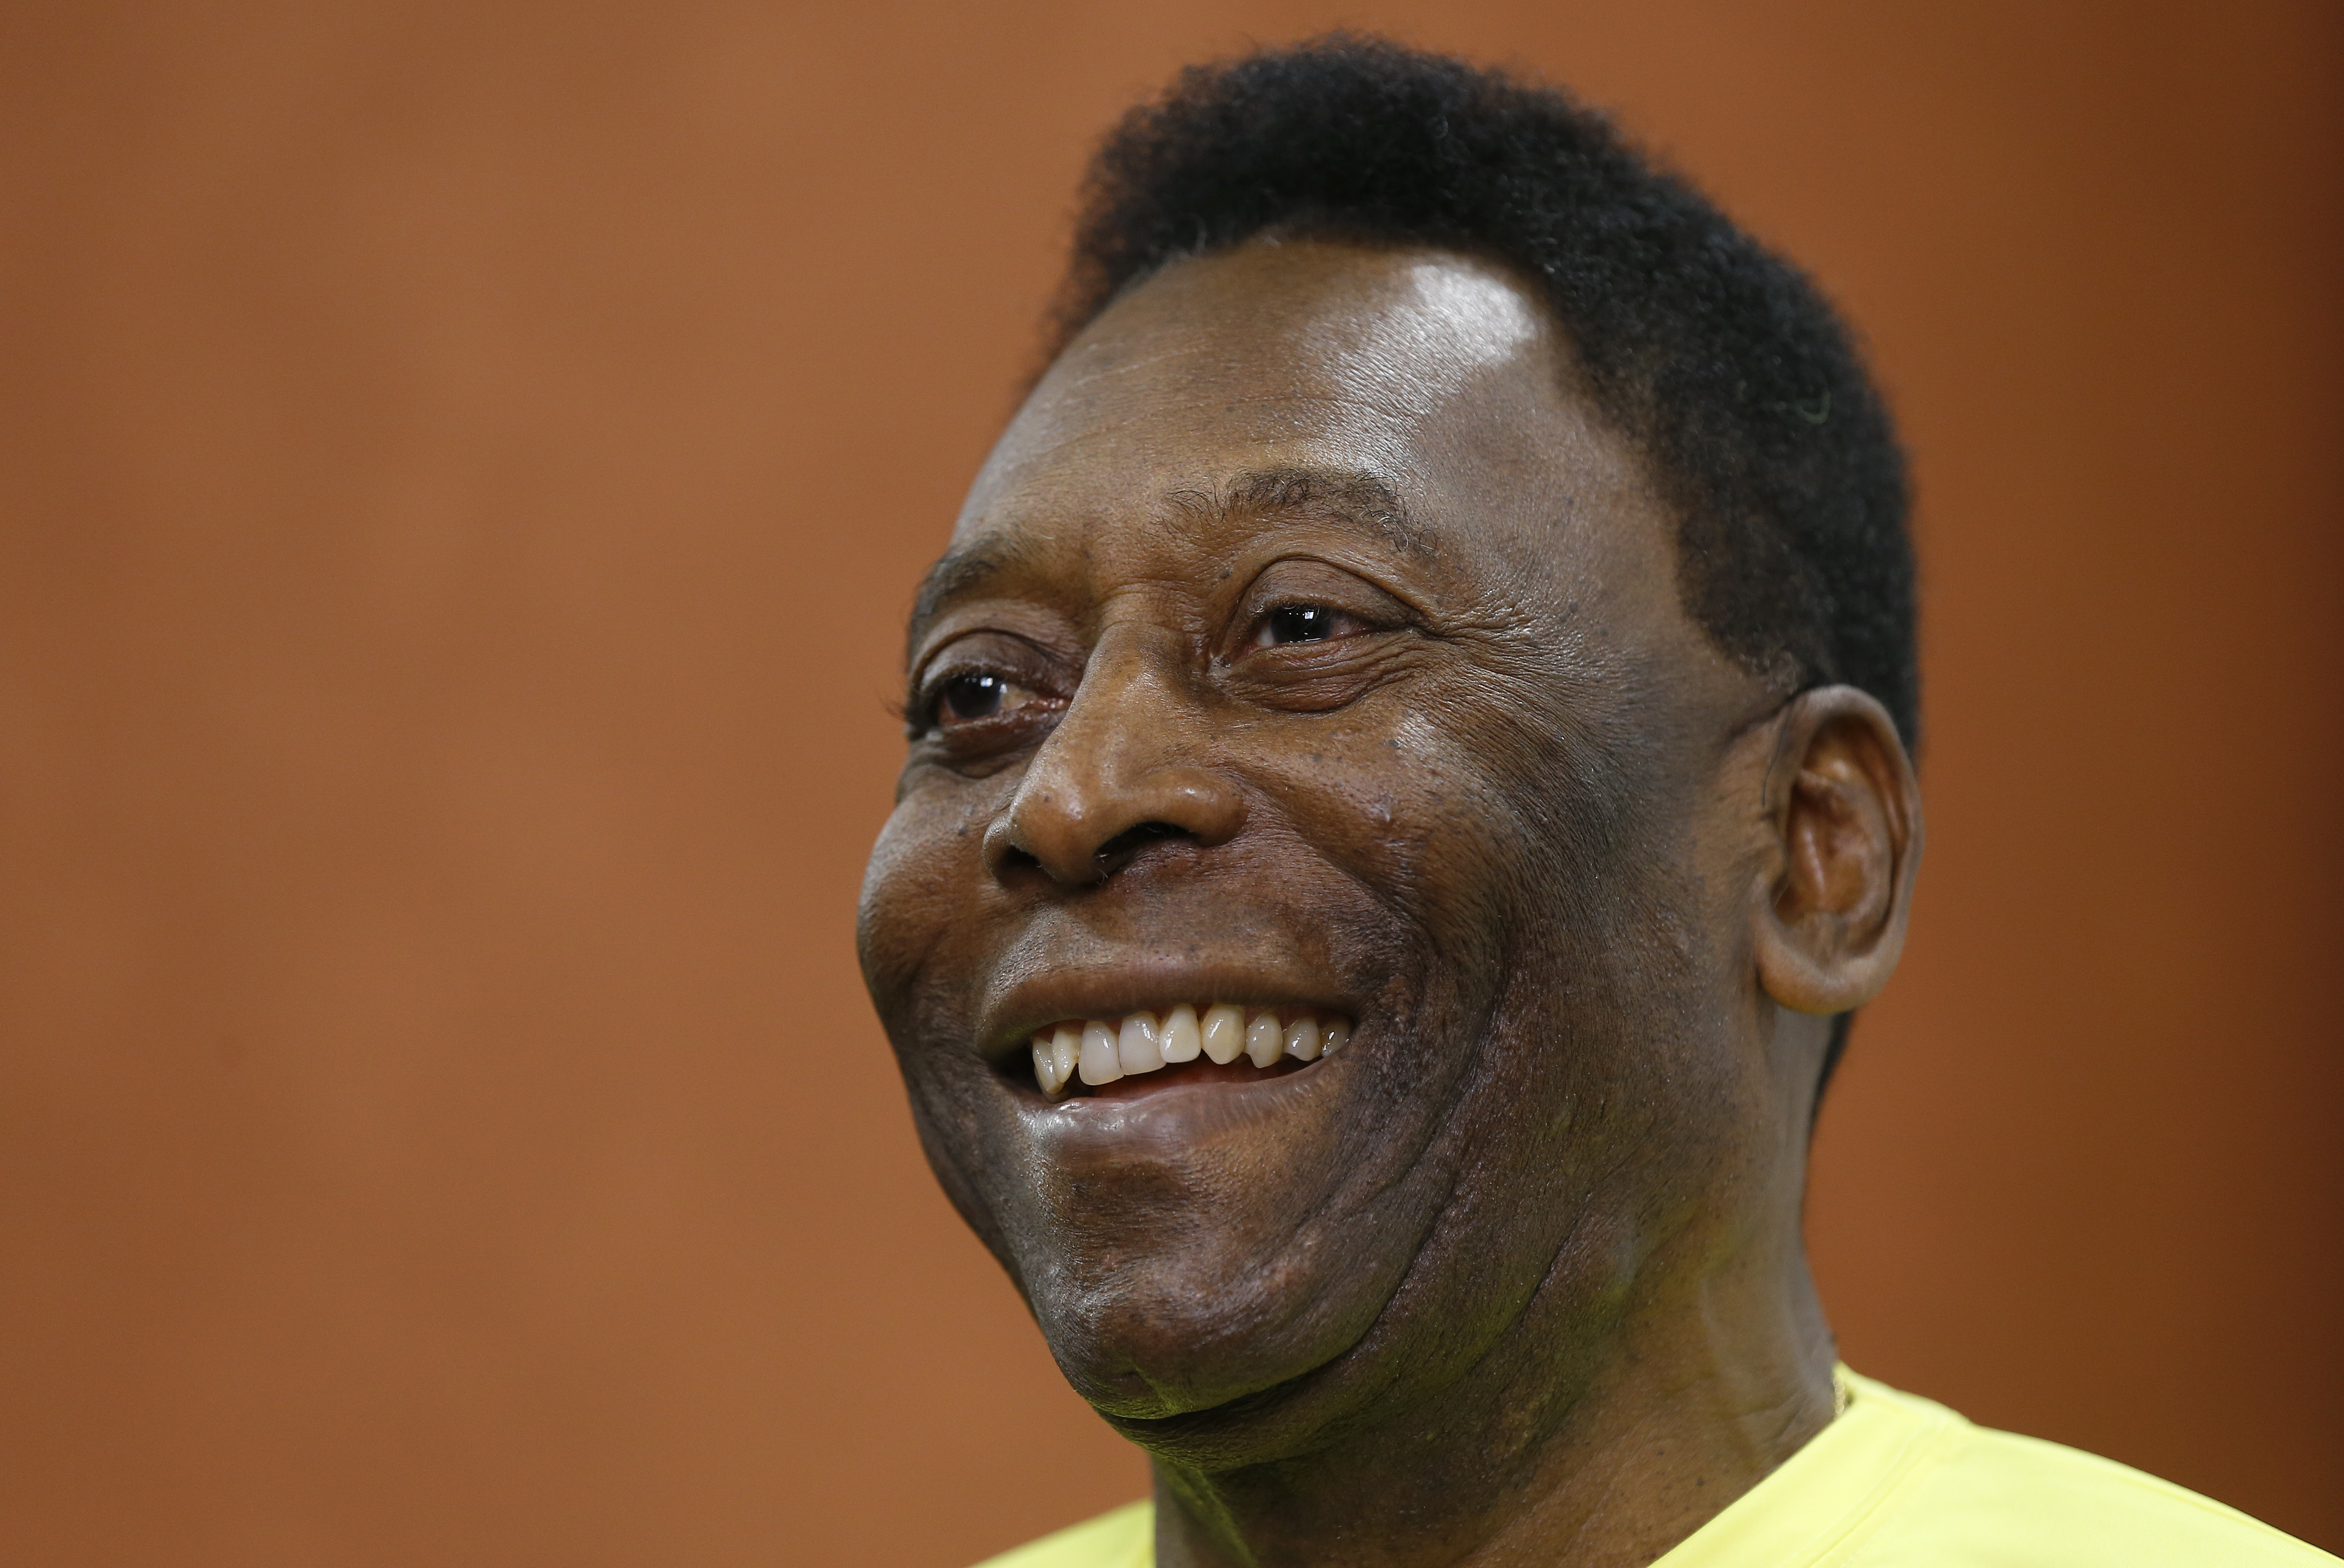 FILE - In this March 20, 2015 file photo, Brazilian soccer legend Pele smiles during a media opportunity at a restaurant in London. Pele said on Friday, Aug. 5, 2016 that his poor health will keep him from attending the opening ceremony of the Rio Olympic